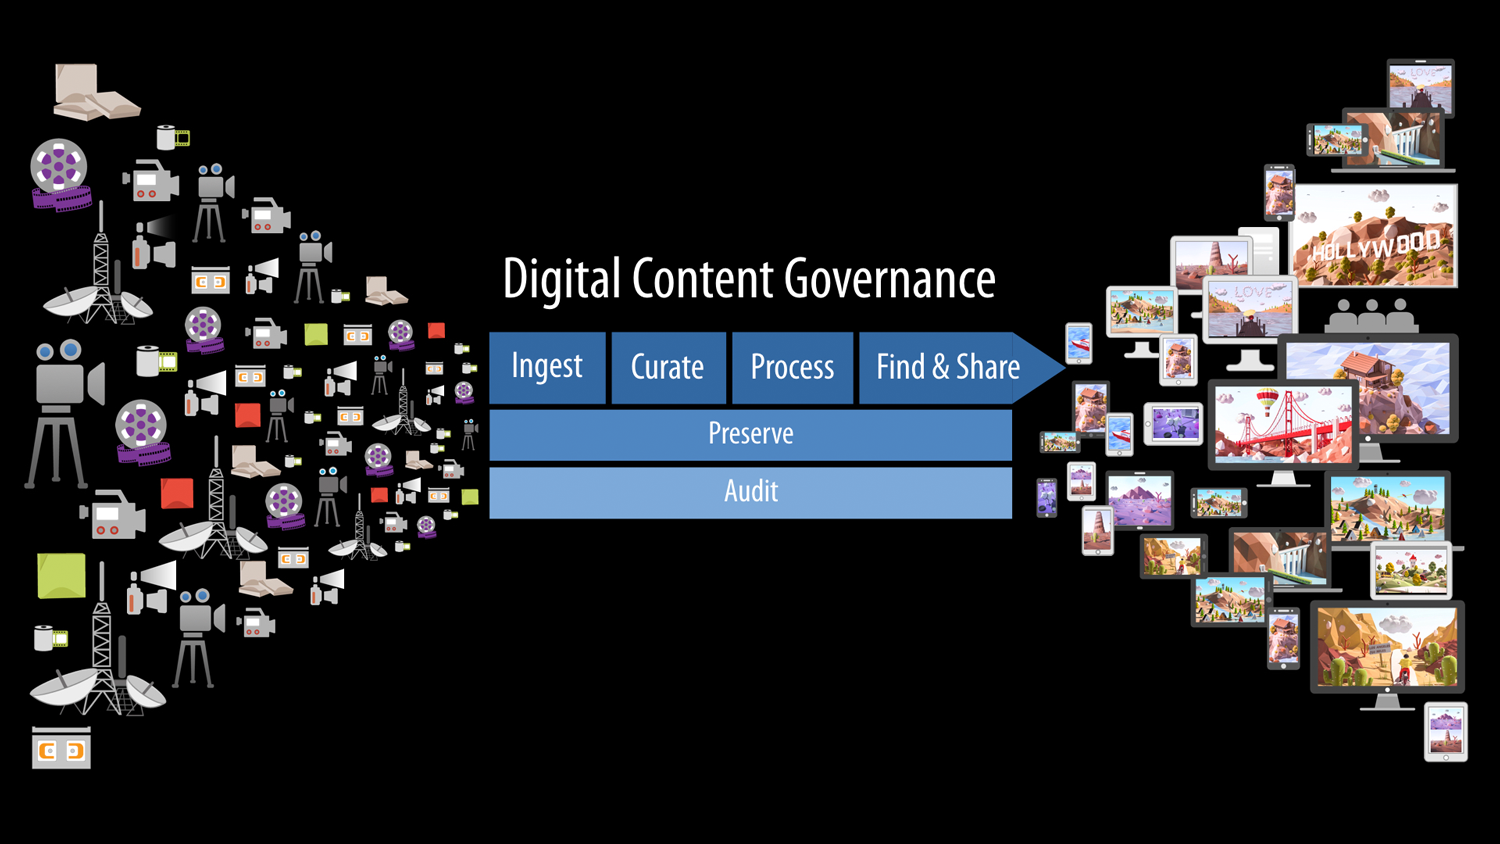 image from Digital Content Governance – the Clever Storage